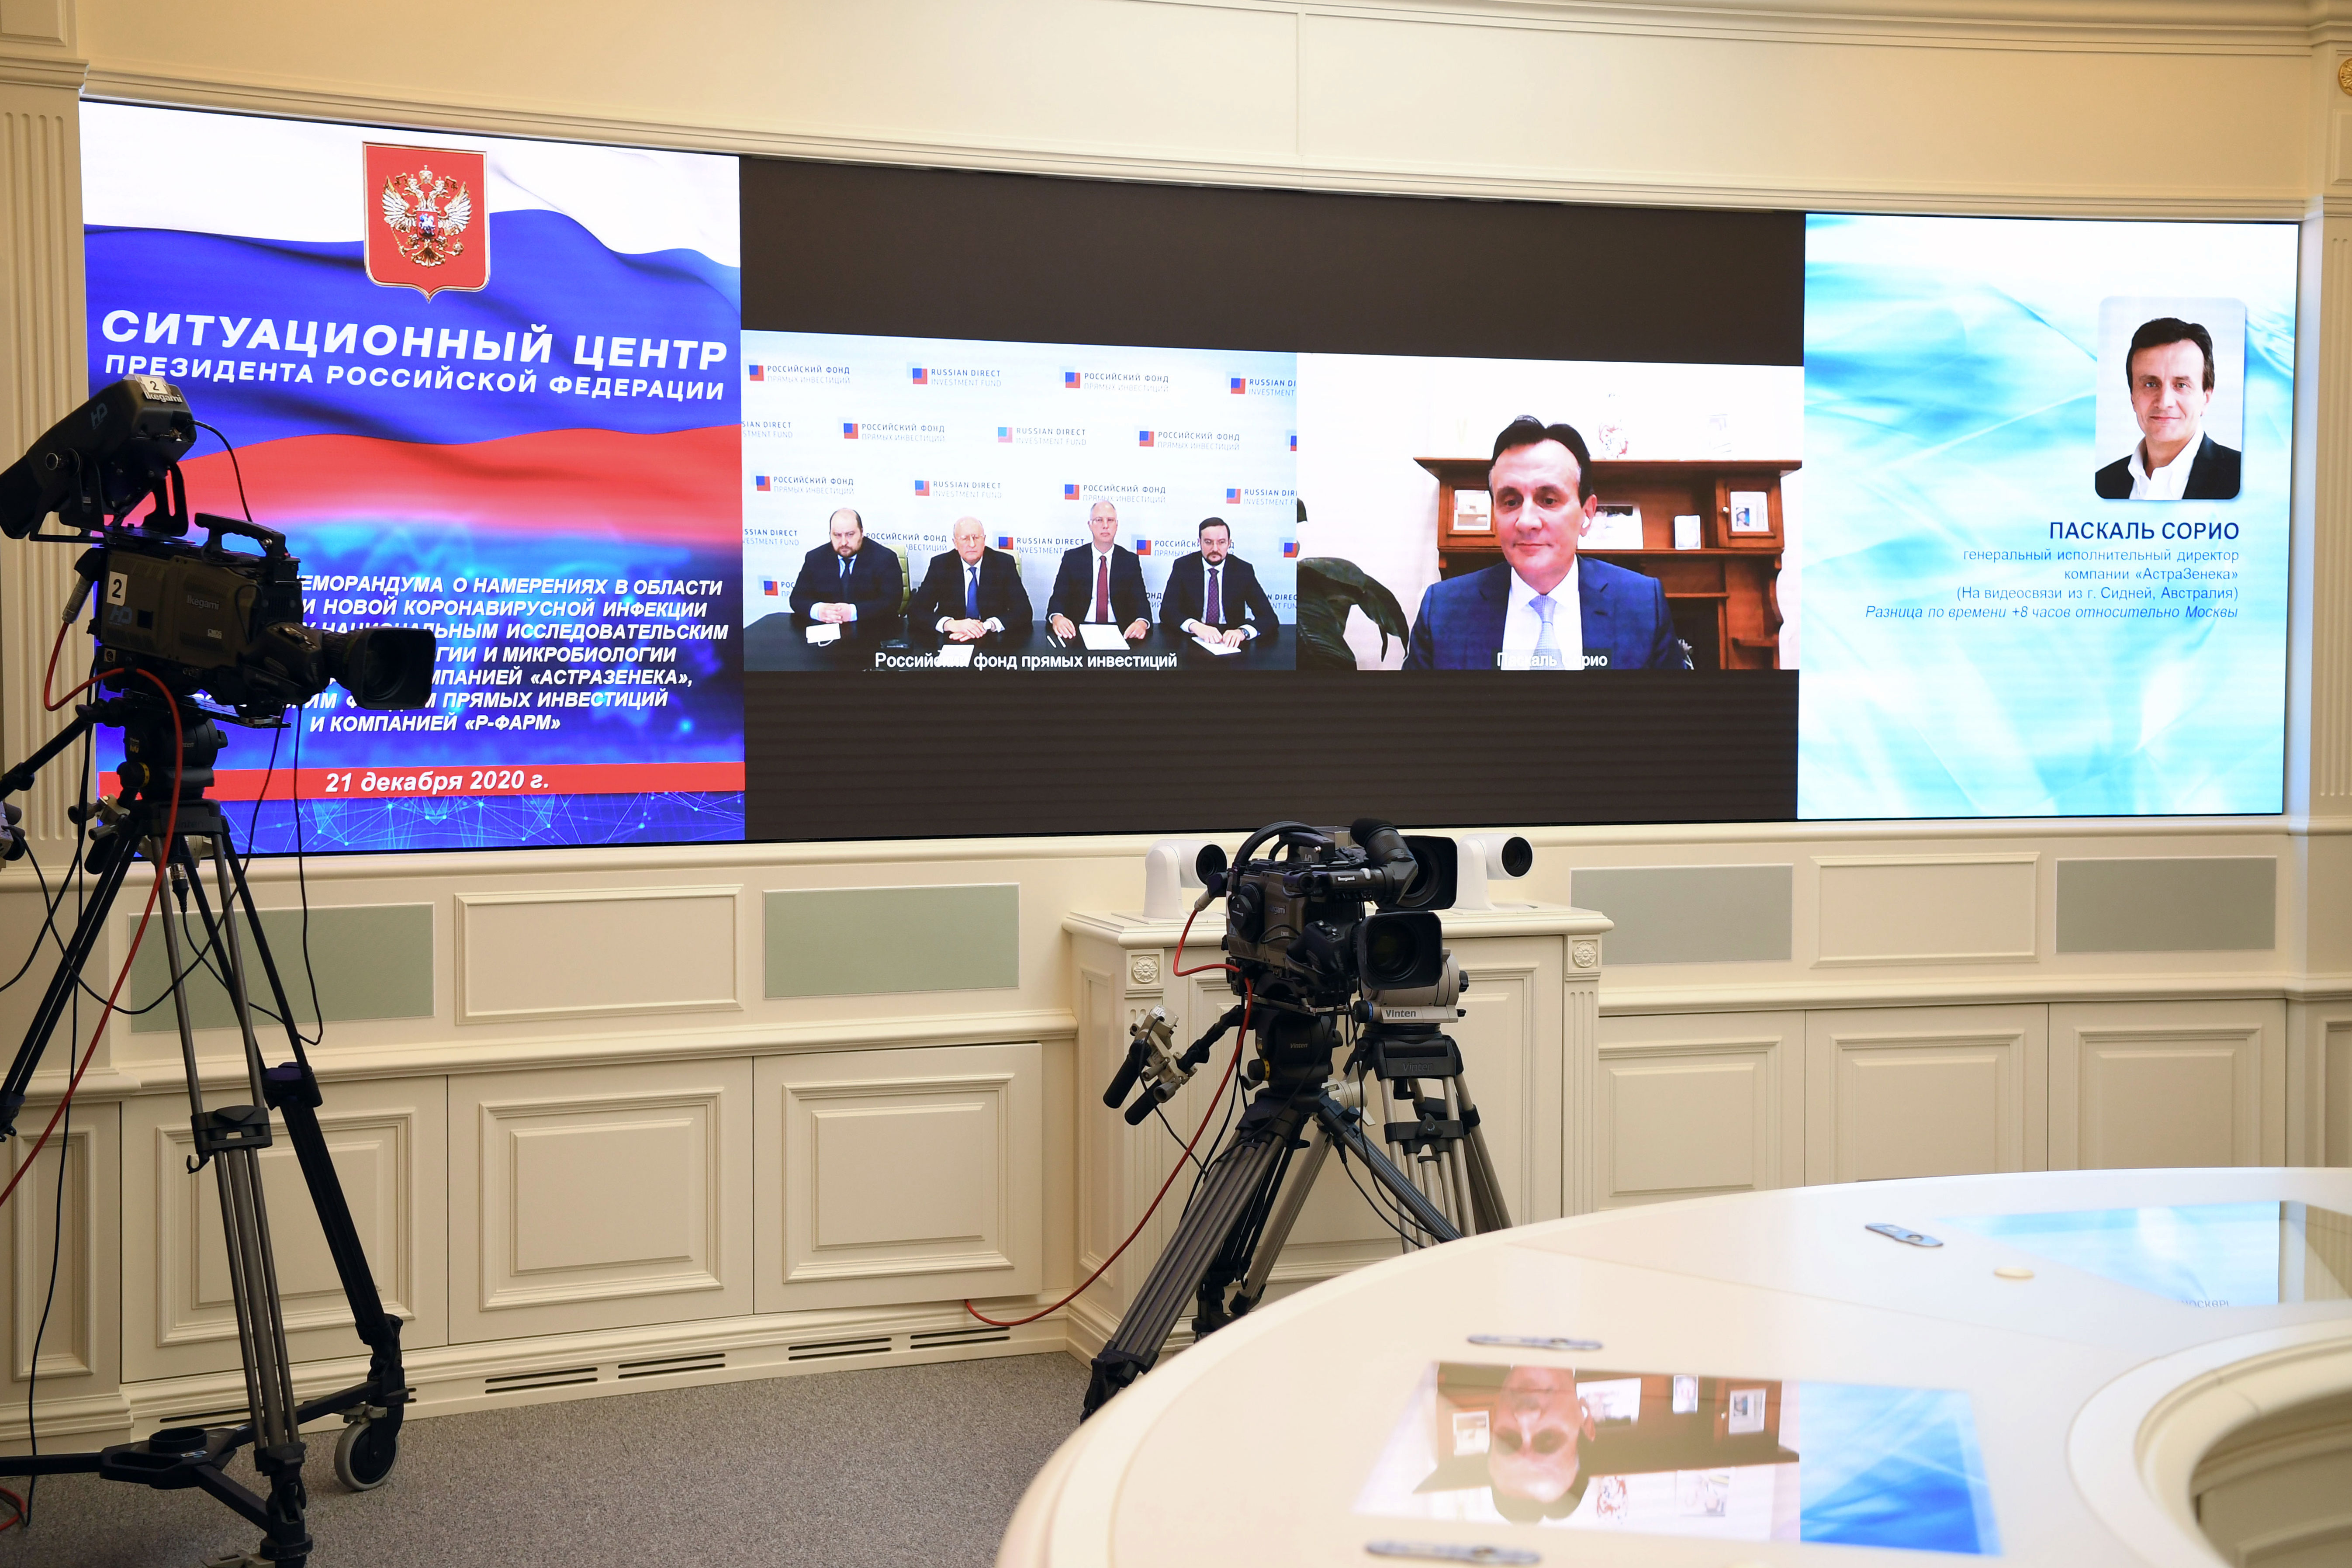 Participants join a video conference on December 21, chaired by Russia's President Vladimir Putin in Moscow, to sign a coronavirus vaccine memorandum of cooperation between AstraZeneca and the Gamaleya Research Institute.